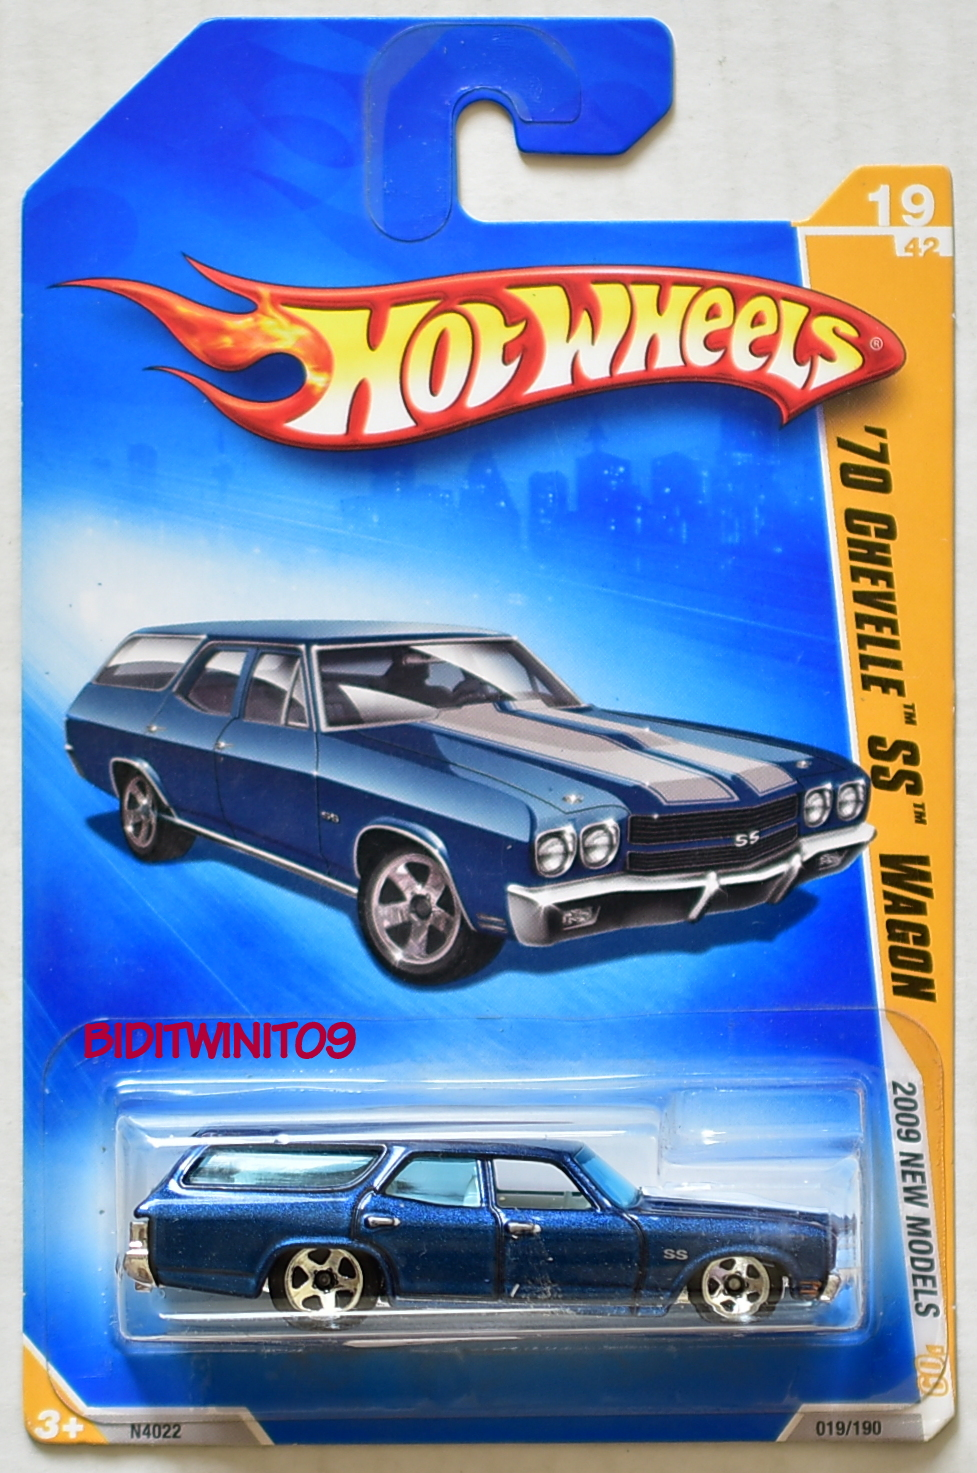 HOT WHEELS 2009 NEW MODELS '70 CHEVELLE SS WAGON BLUE